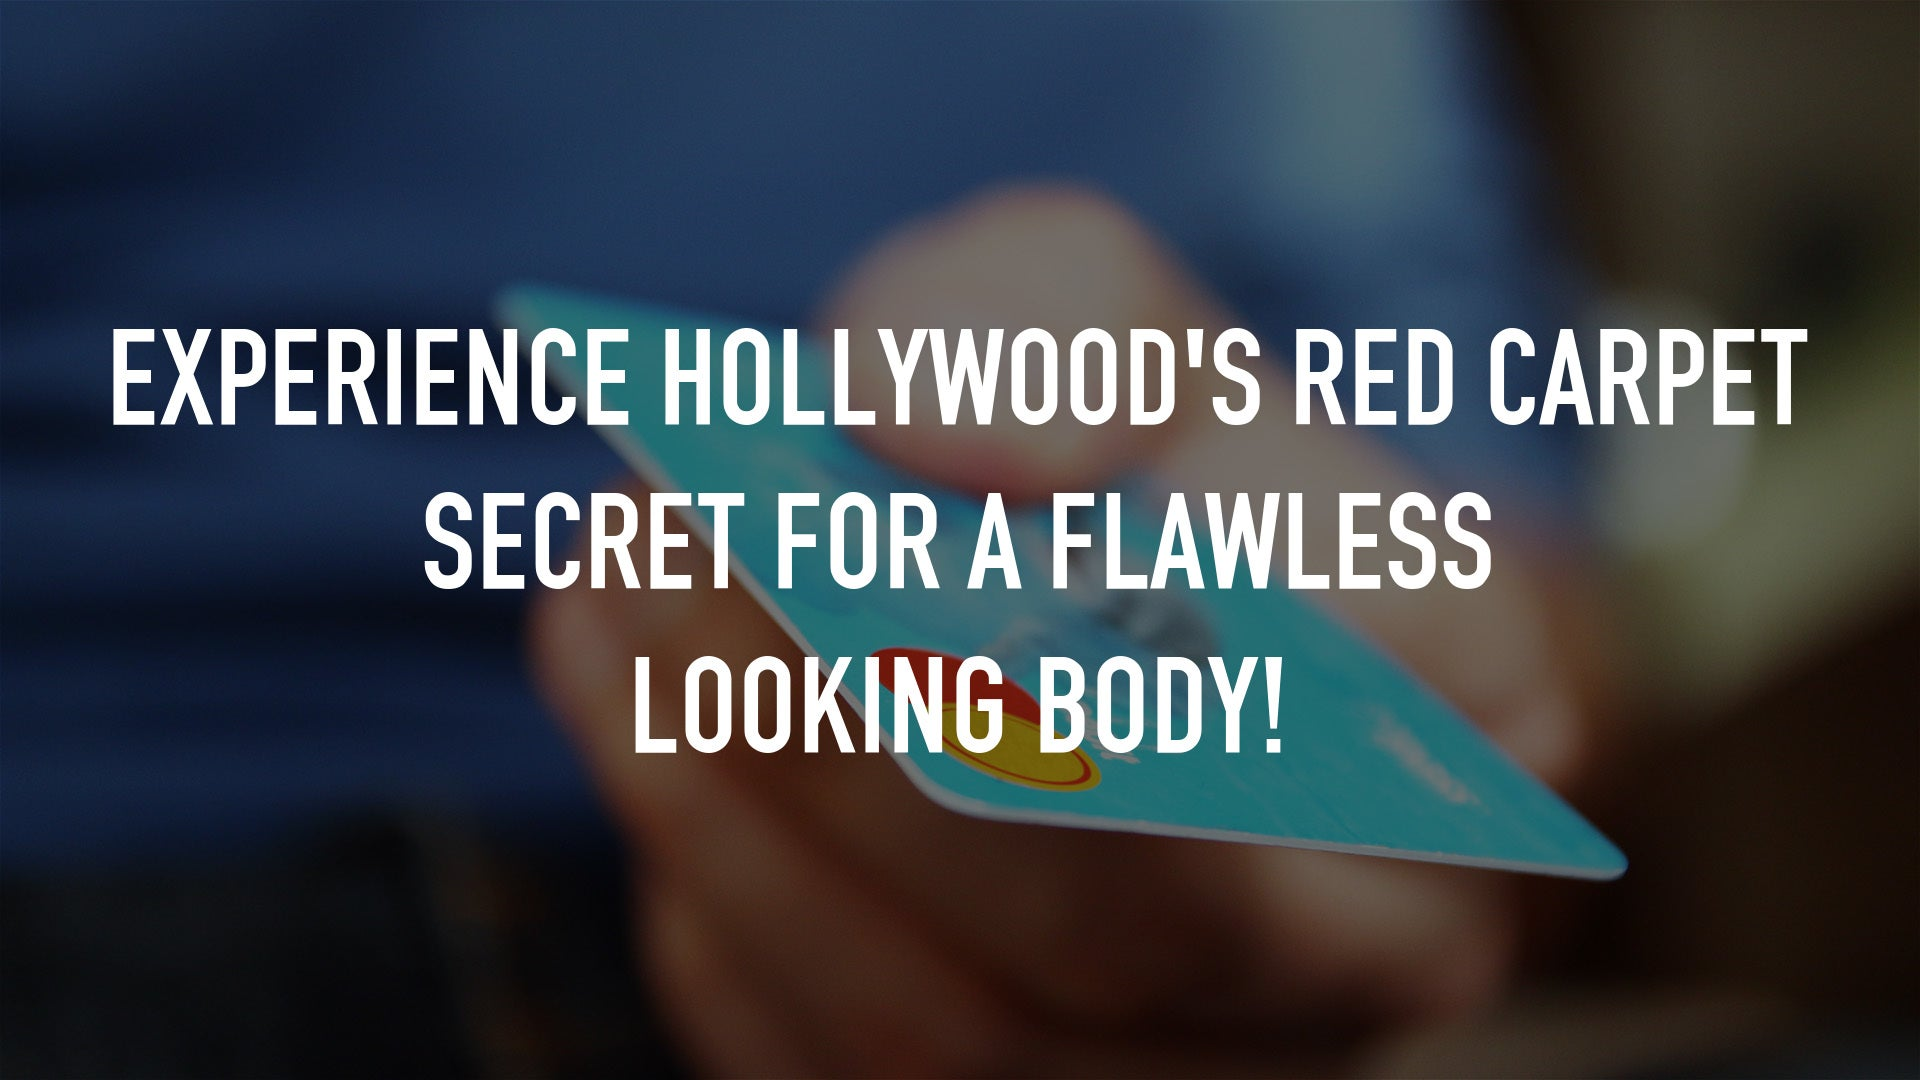 Experience Hollywood's Red Carpet Secret for a Flawless Looking Body!